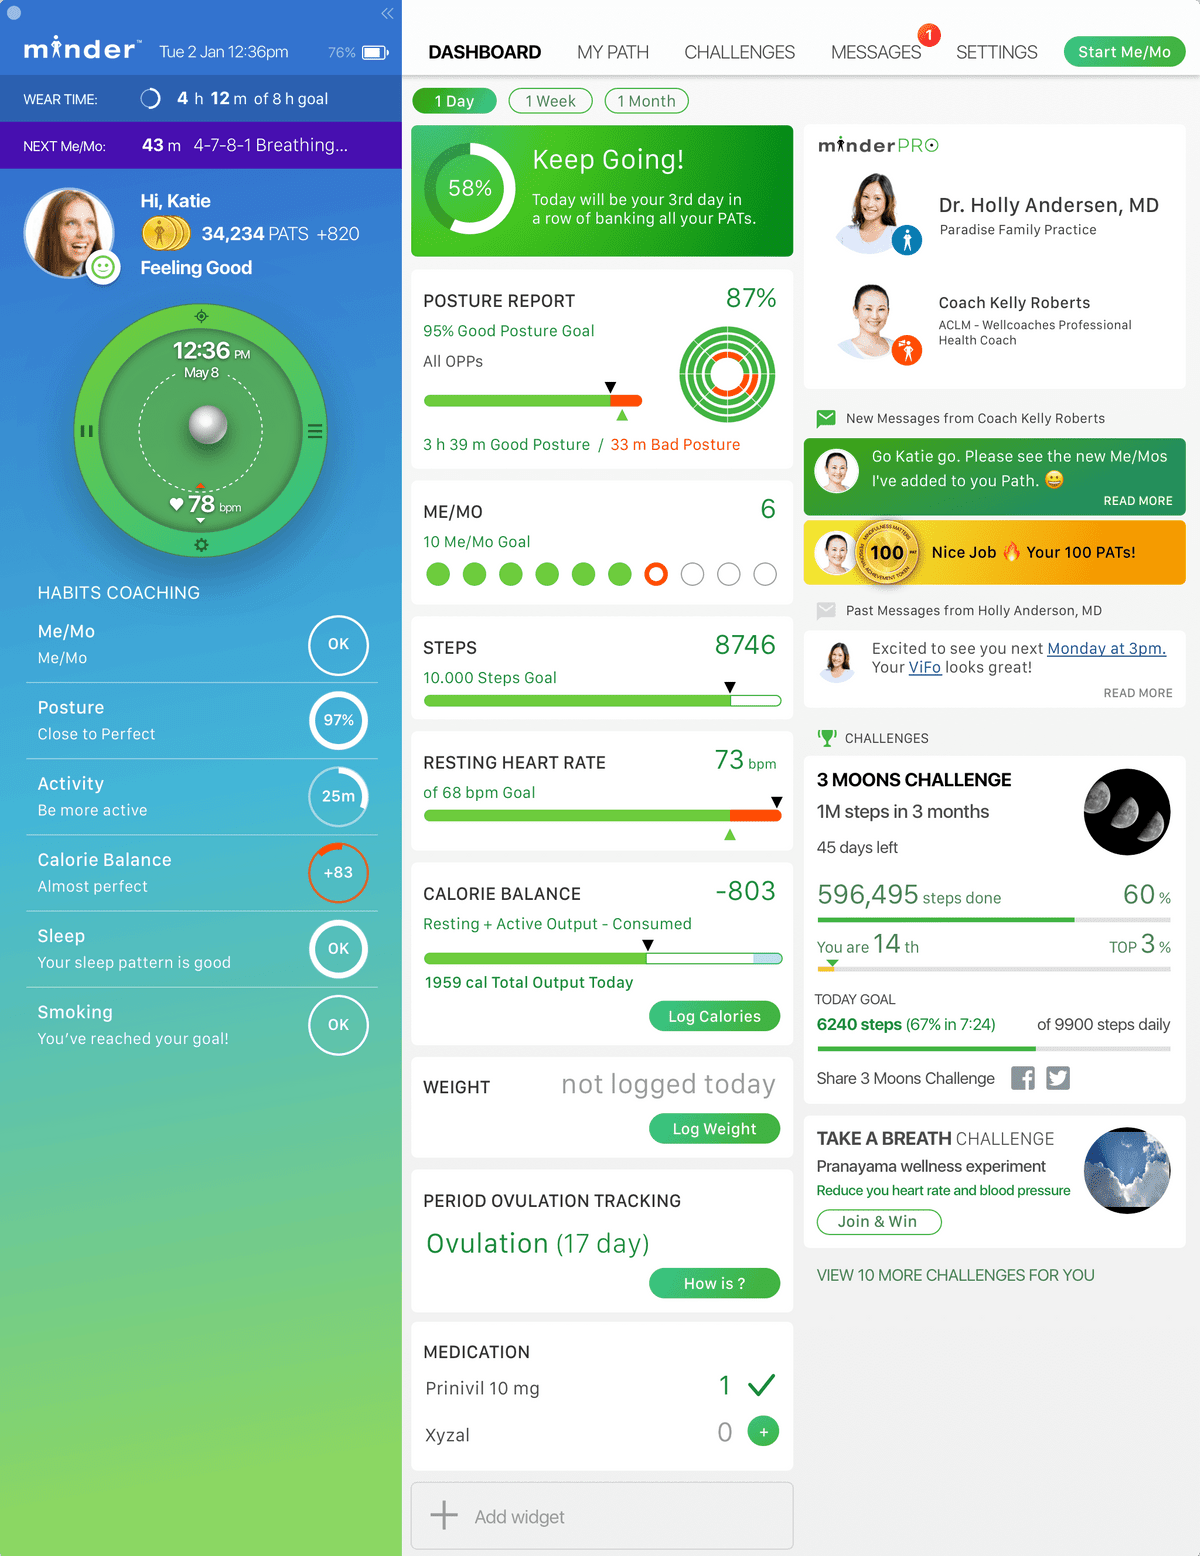 Mindee health and wellness dashboard that displays goals progress, coach messages, and key biofeedback data such as heart rate, steps taken and weight.